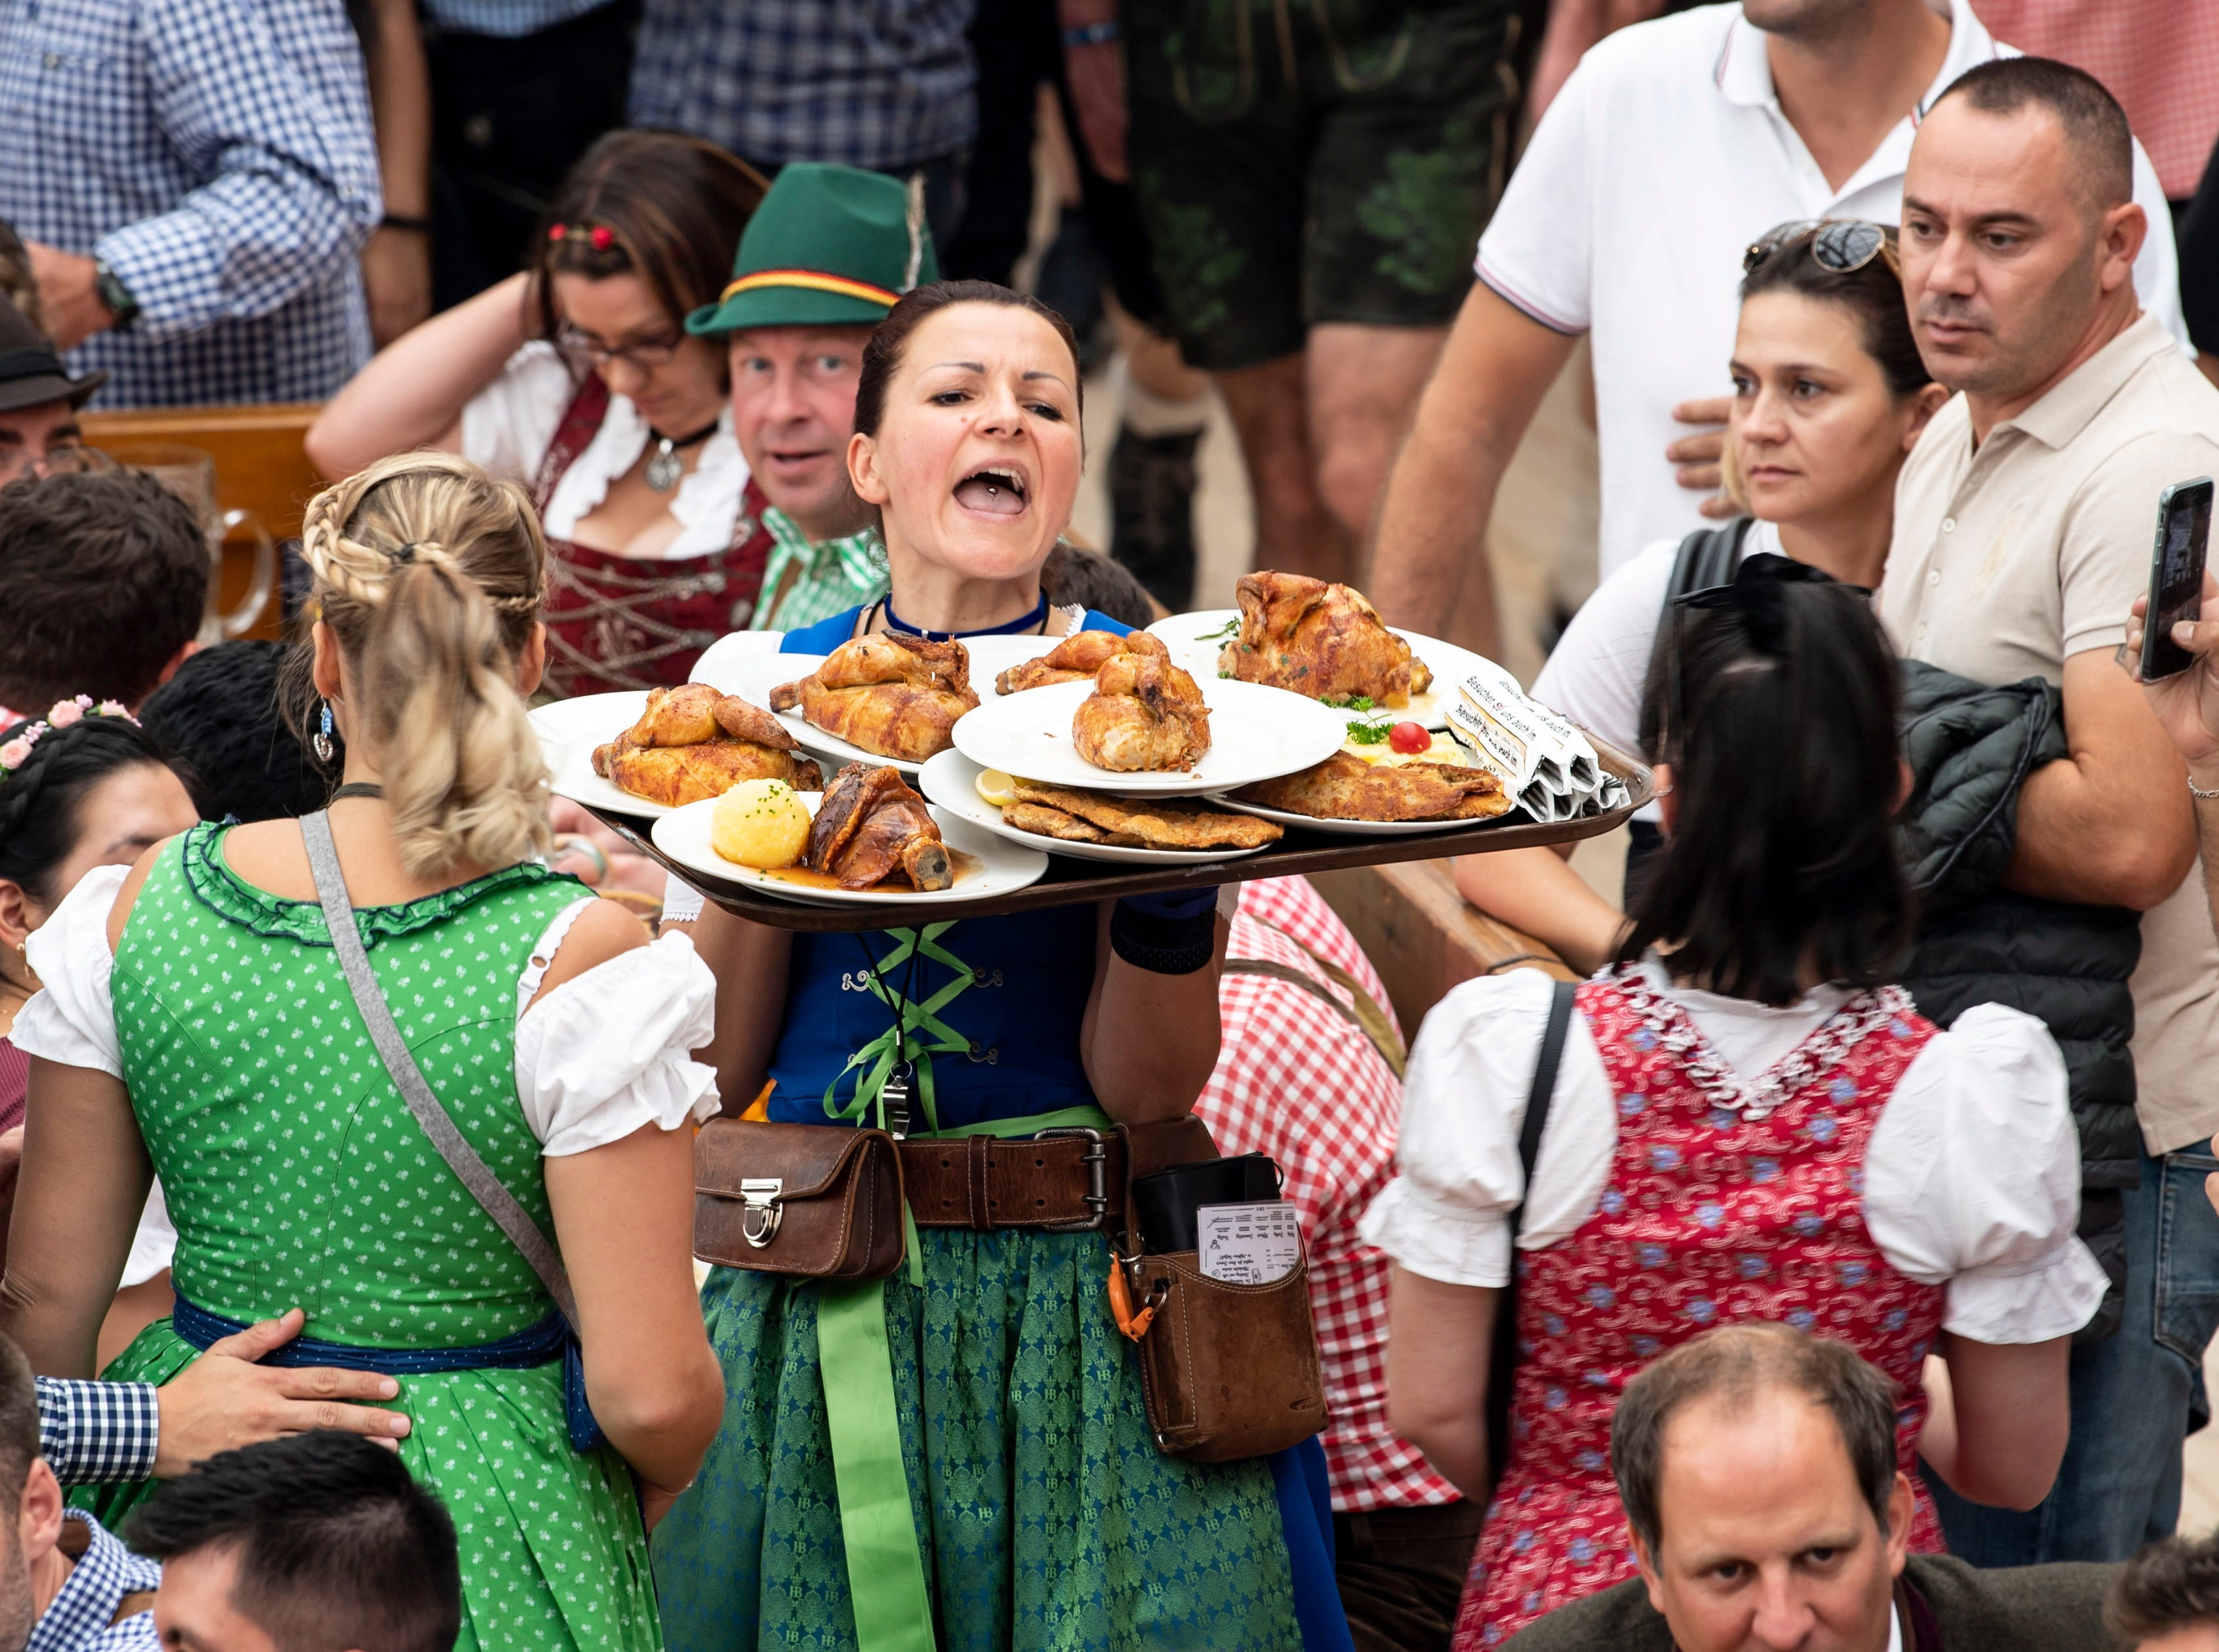 A waitress carries roasted chickens inside the Hofbraeu tent during opening day.